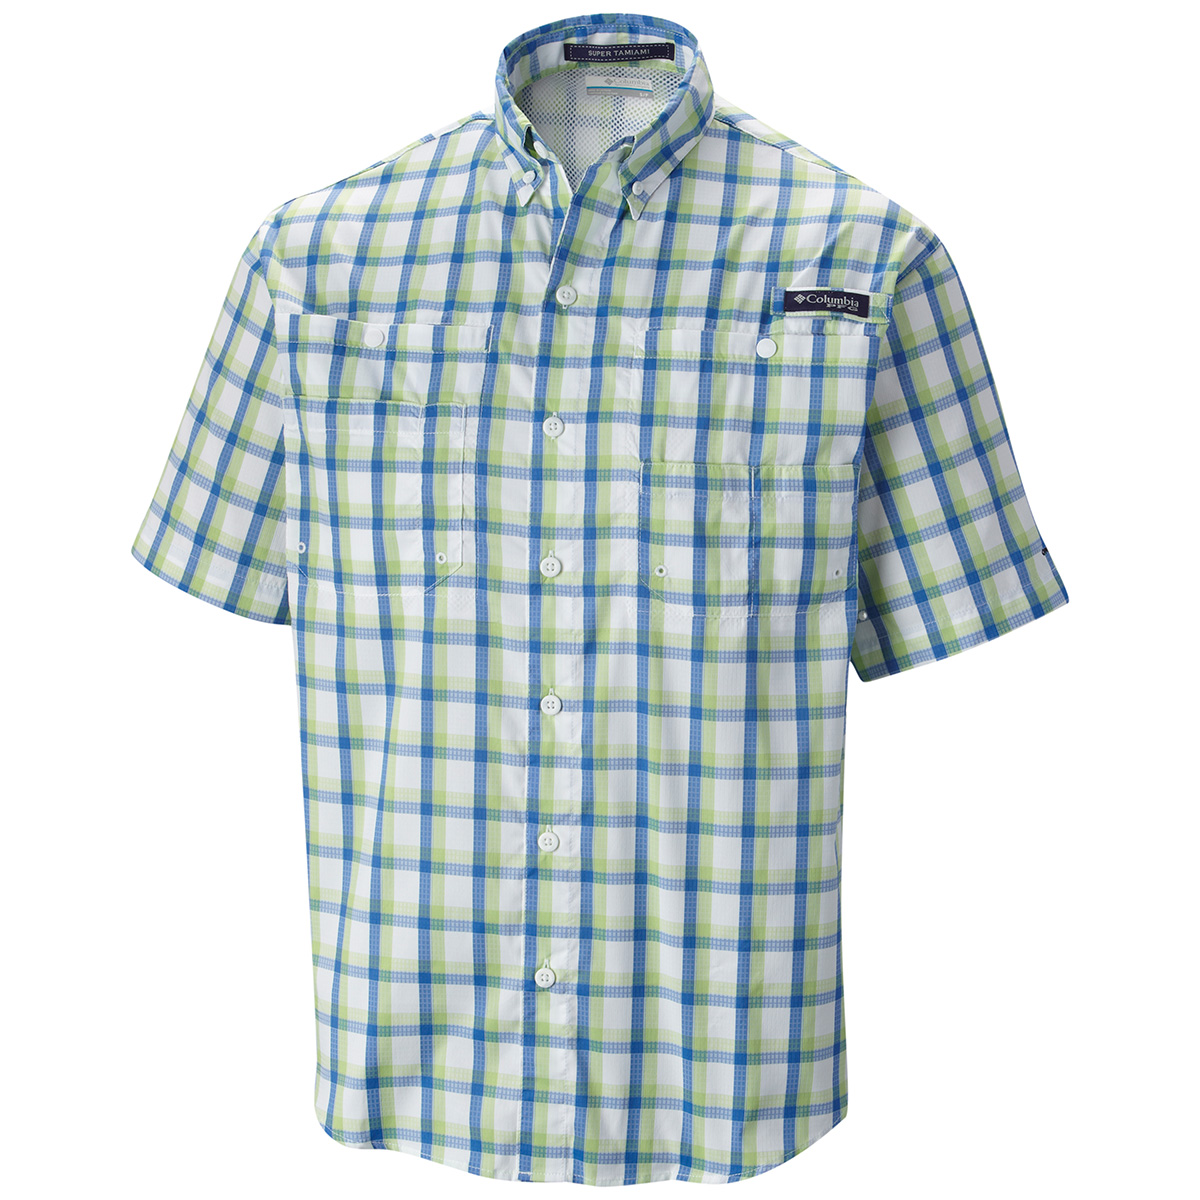 Columbia super tamiami ss shirt 2015 fishing shirts for Columbia fishing shirts on sale